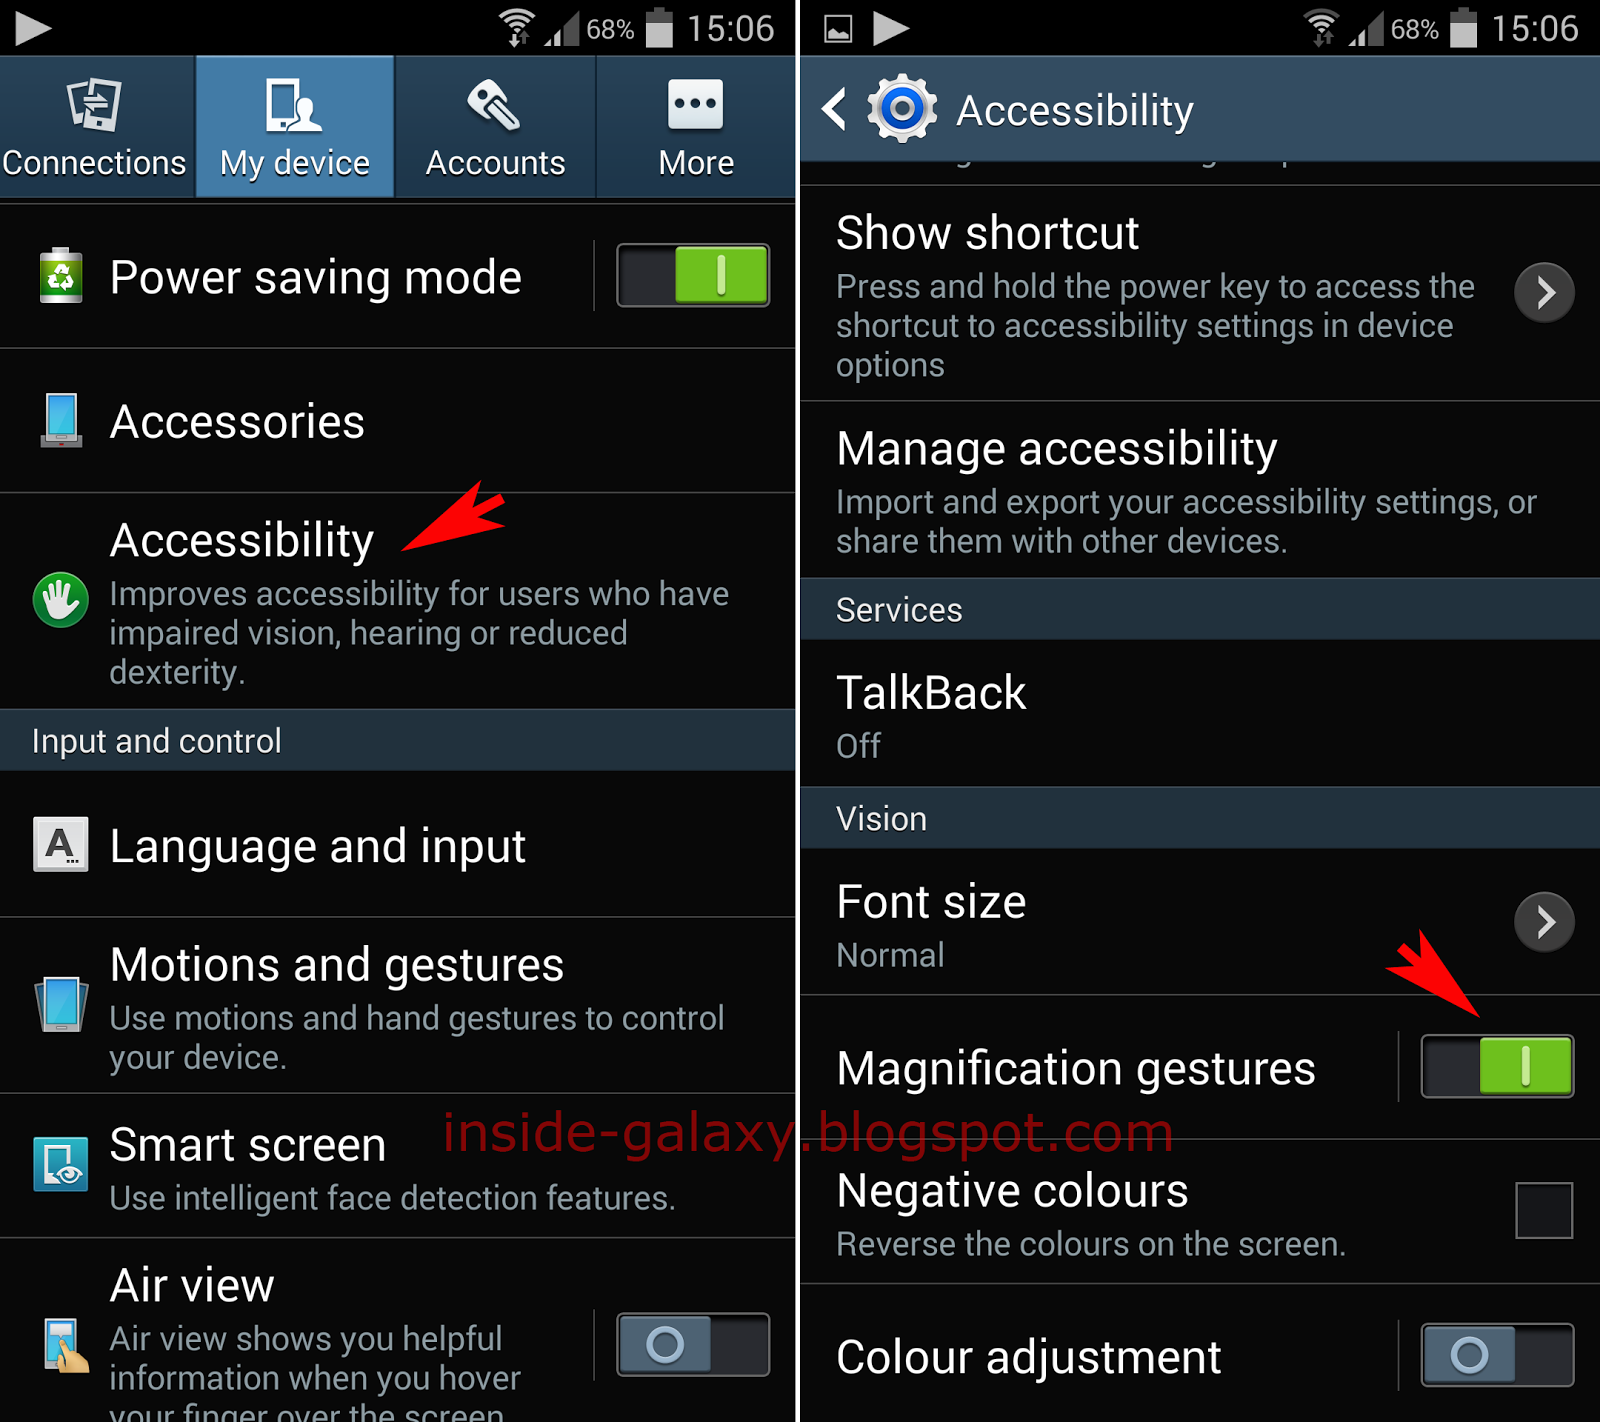 Inside Galaxy: Samsung Galaxy S4: How to Enable and Use